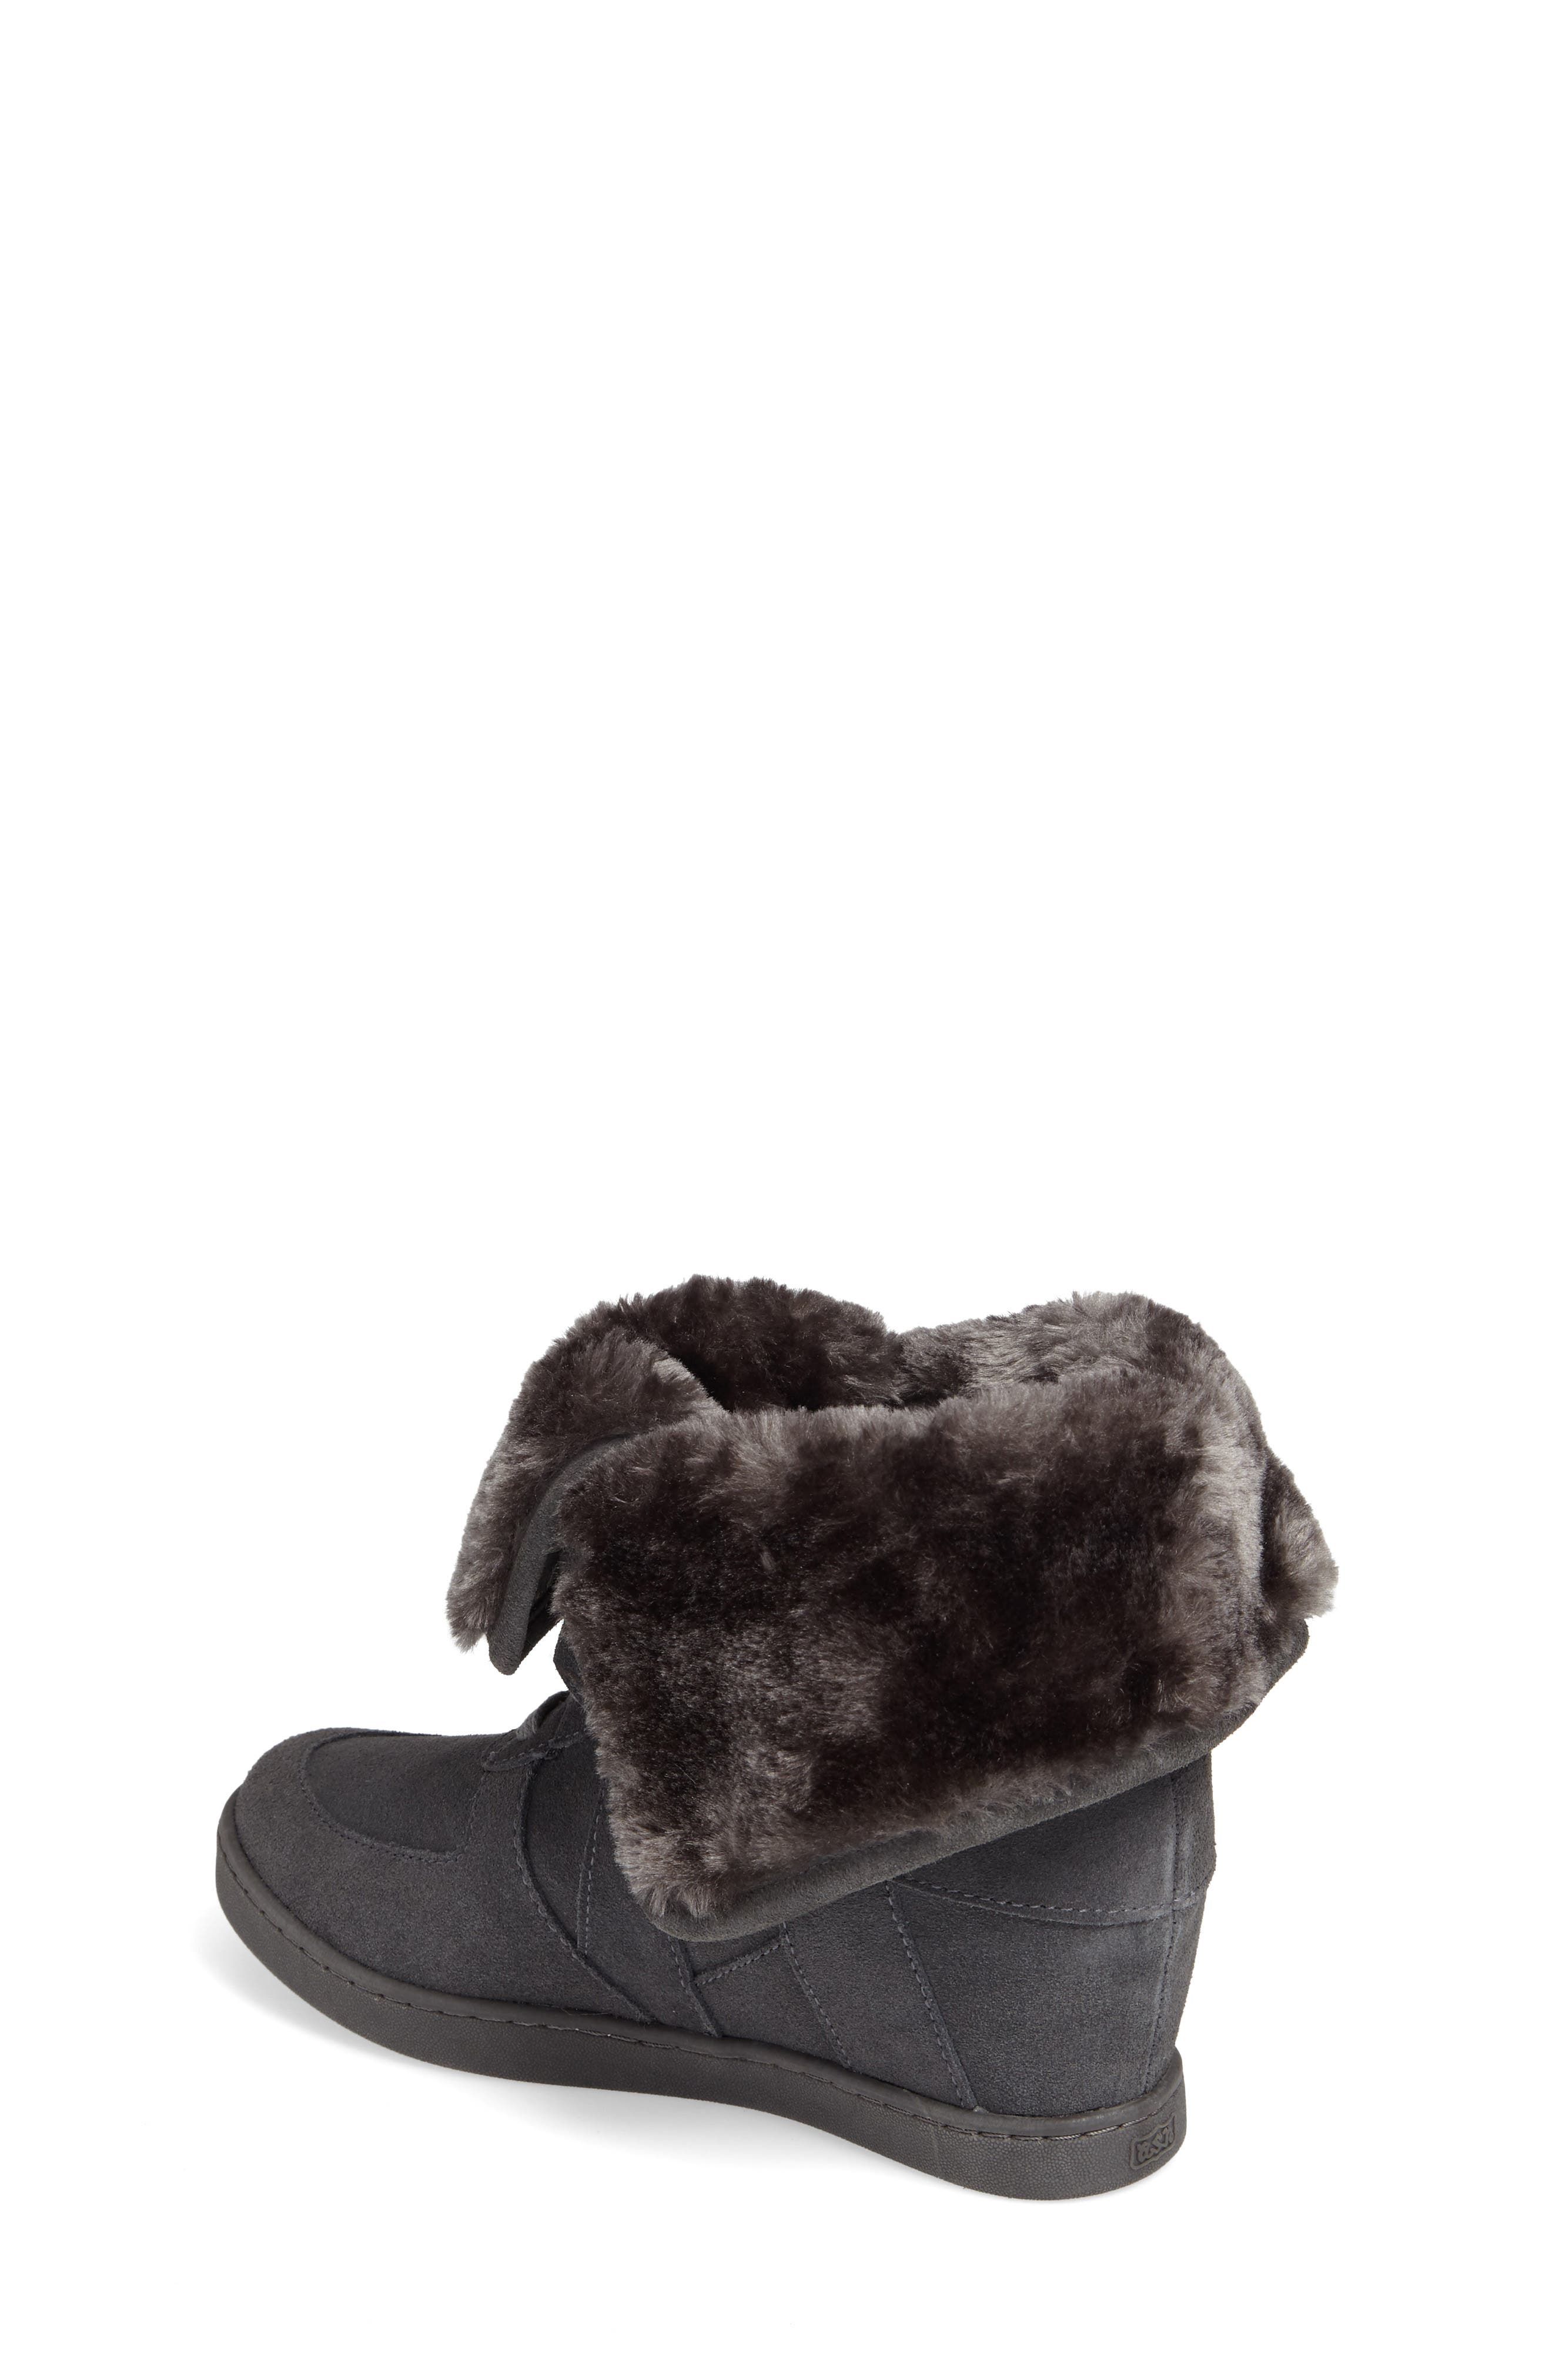 Boogie Beaver Faux Fur Cuffed Bootie,                             Alternate thumbnail 2, color,                             052